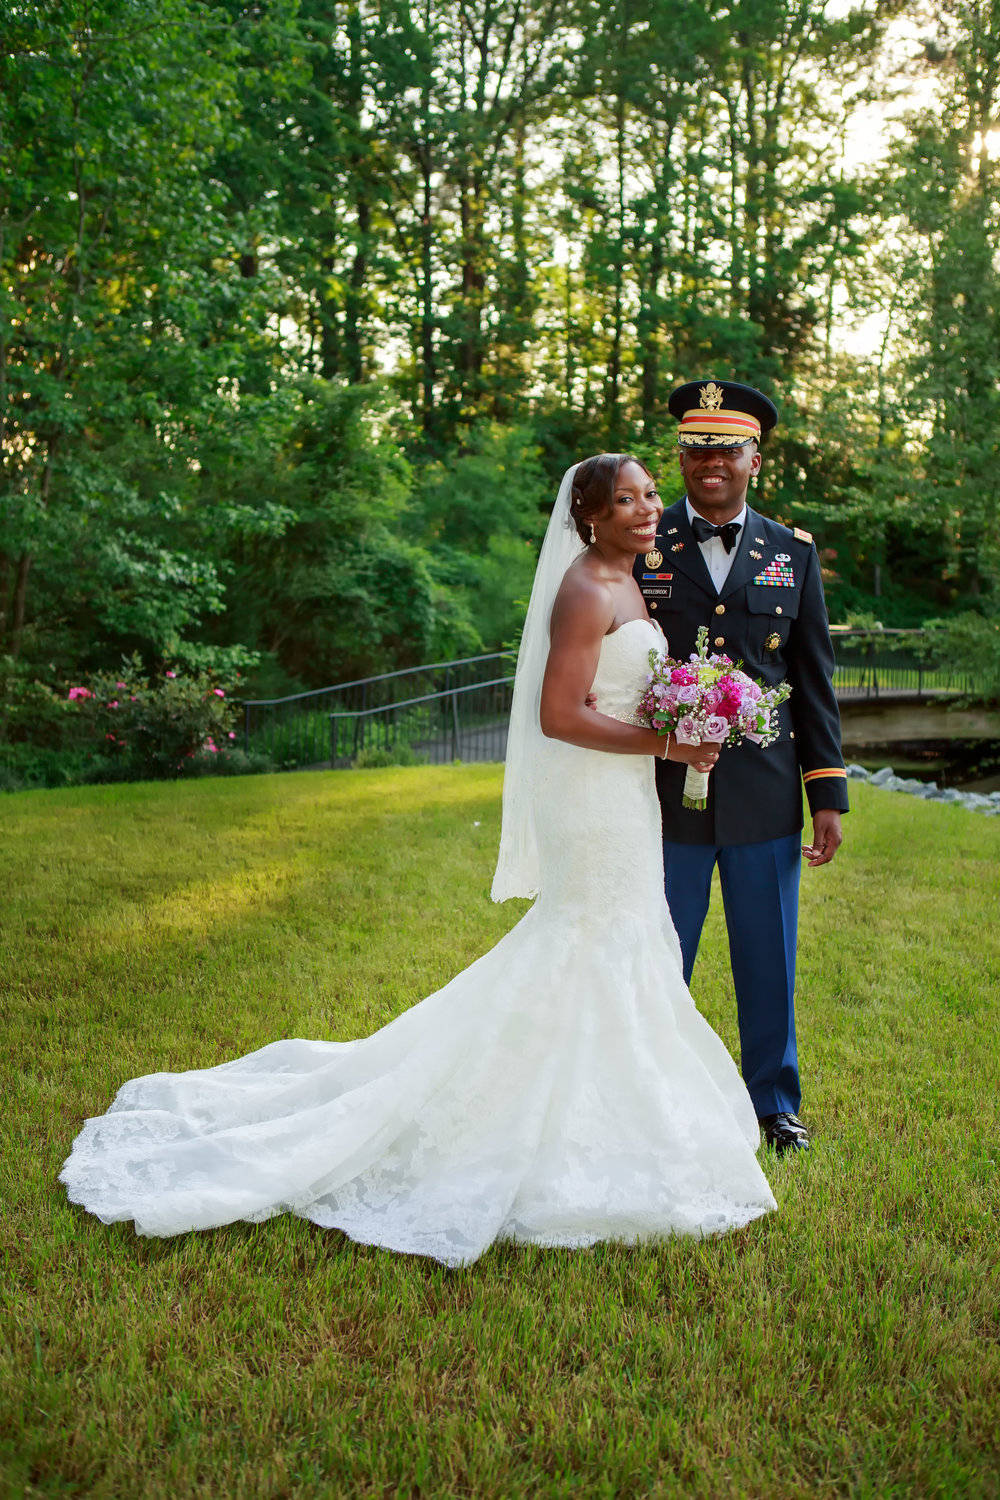 NC-Wedding-Vizcaya-Villa-Fayetteville-Bride-and-Groom-13.jpg